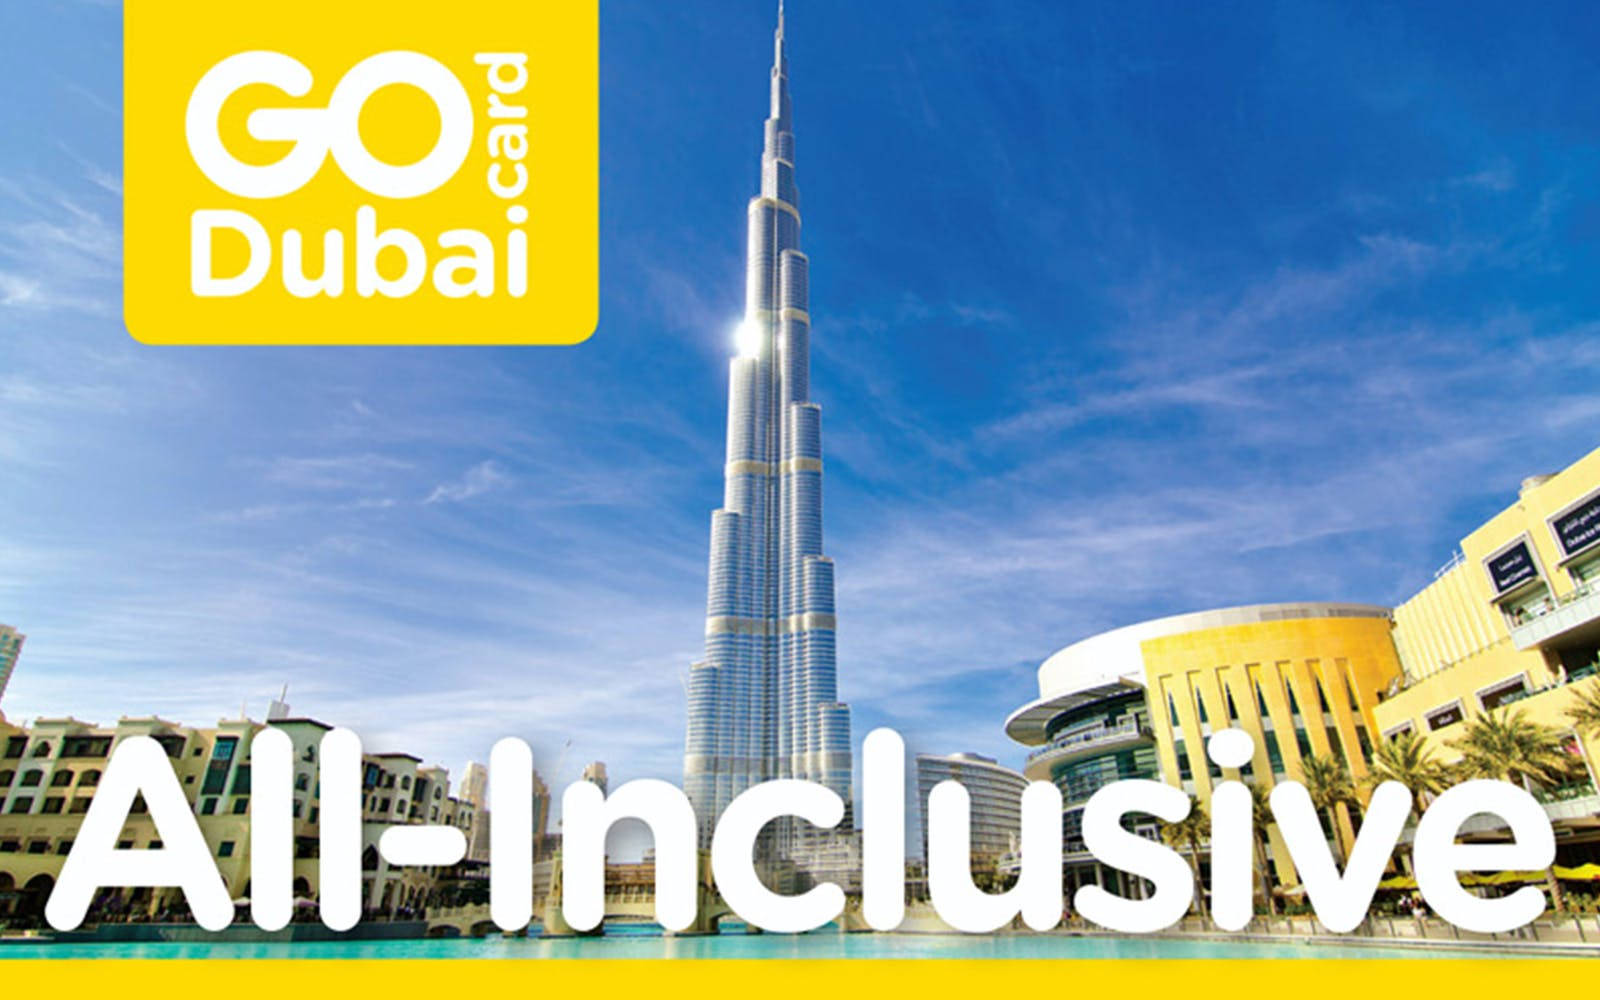 go dubai all inclusive pass -1